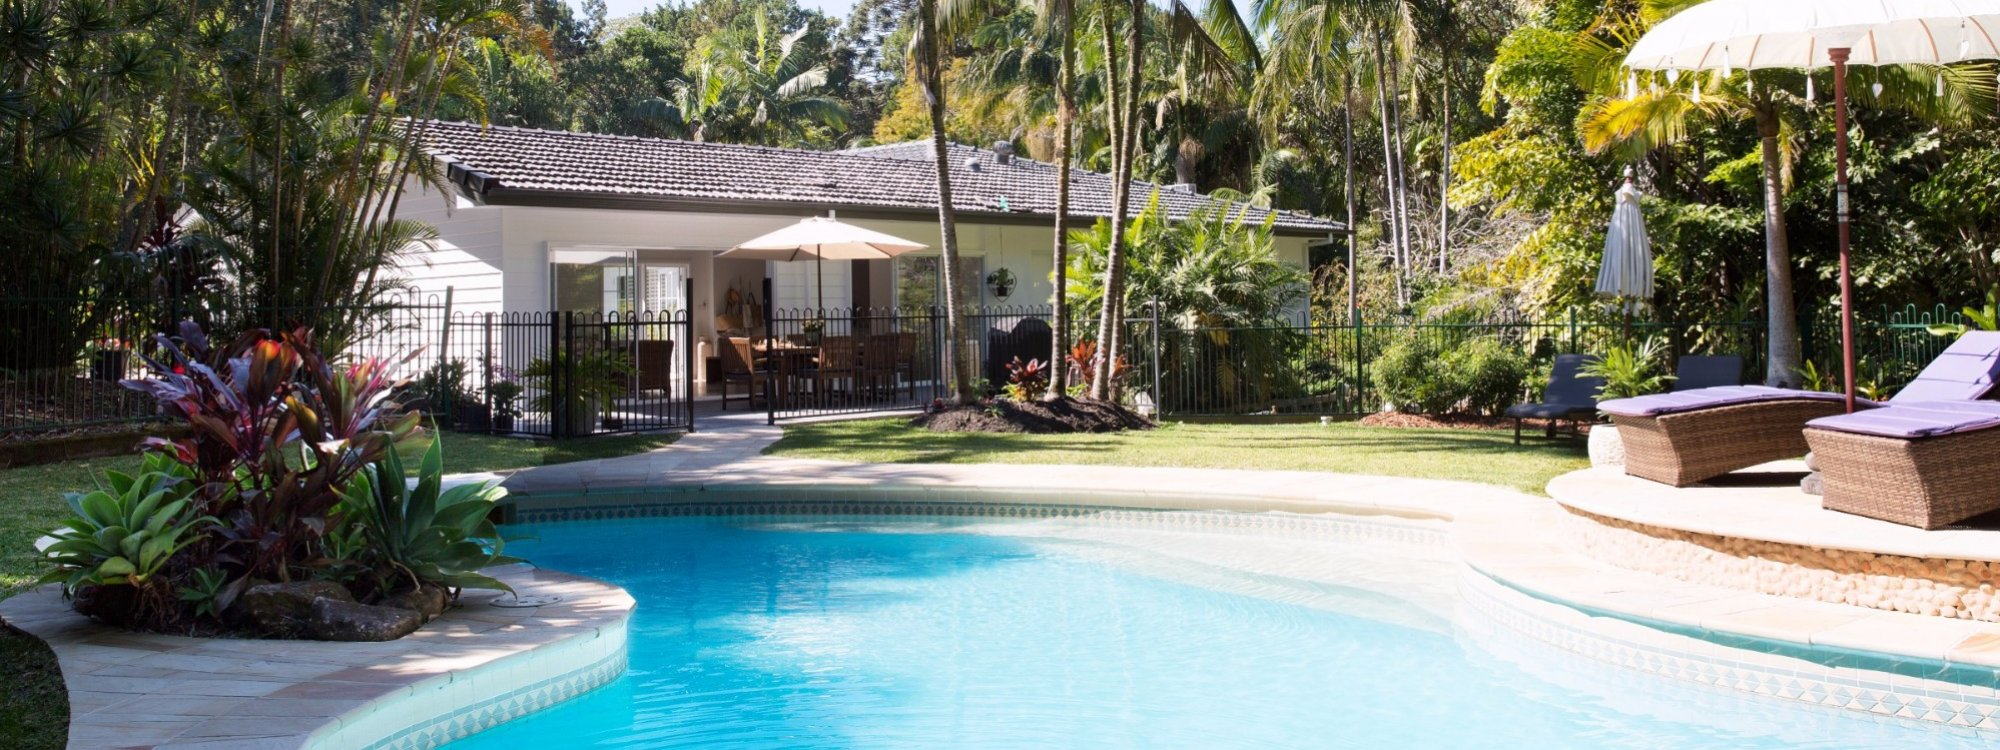 Satara - tropical pool setting